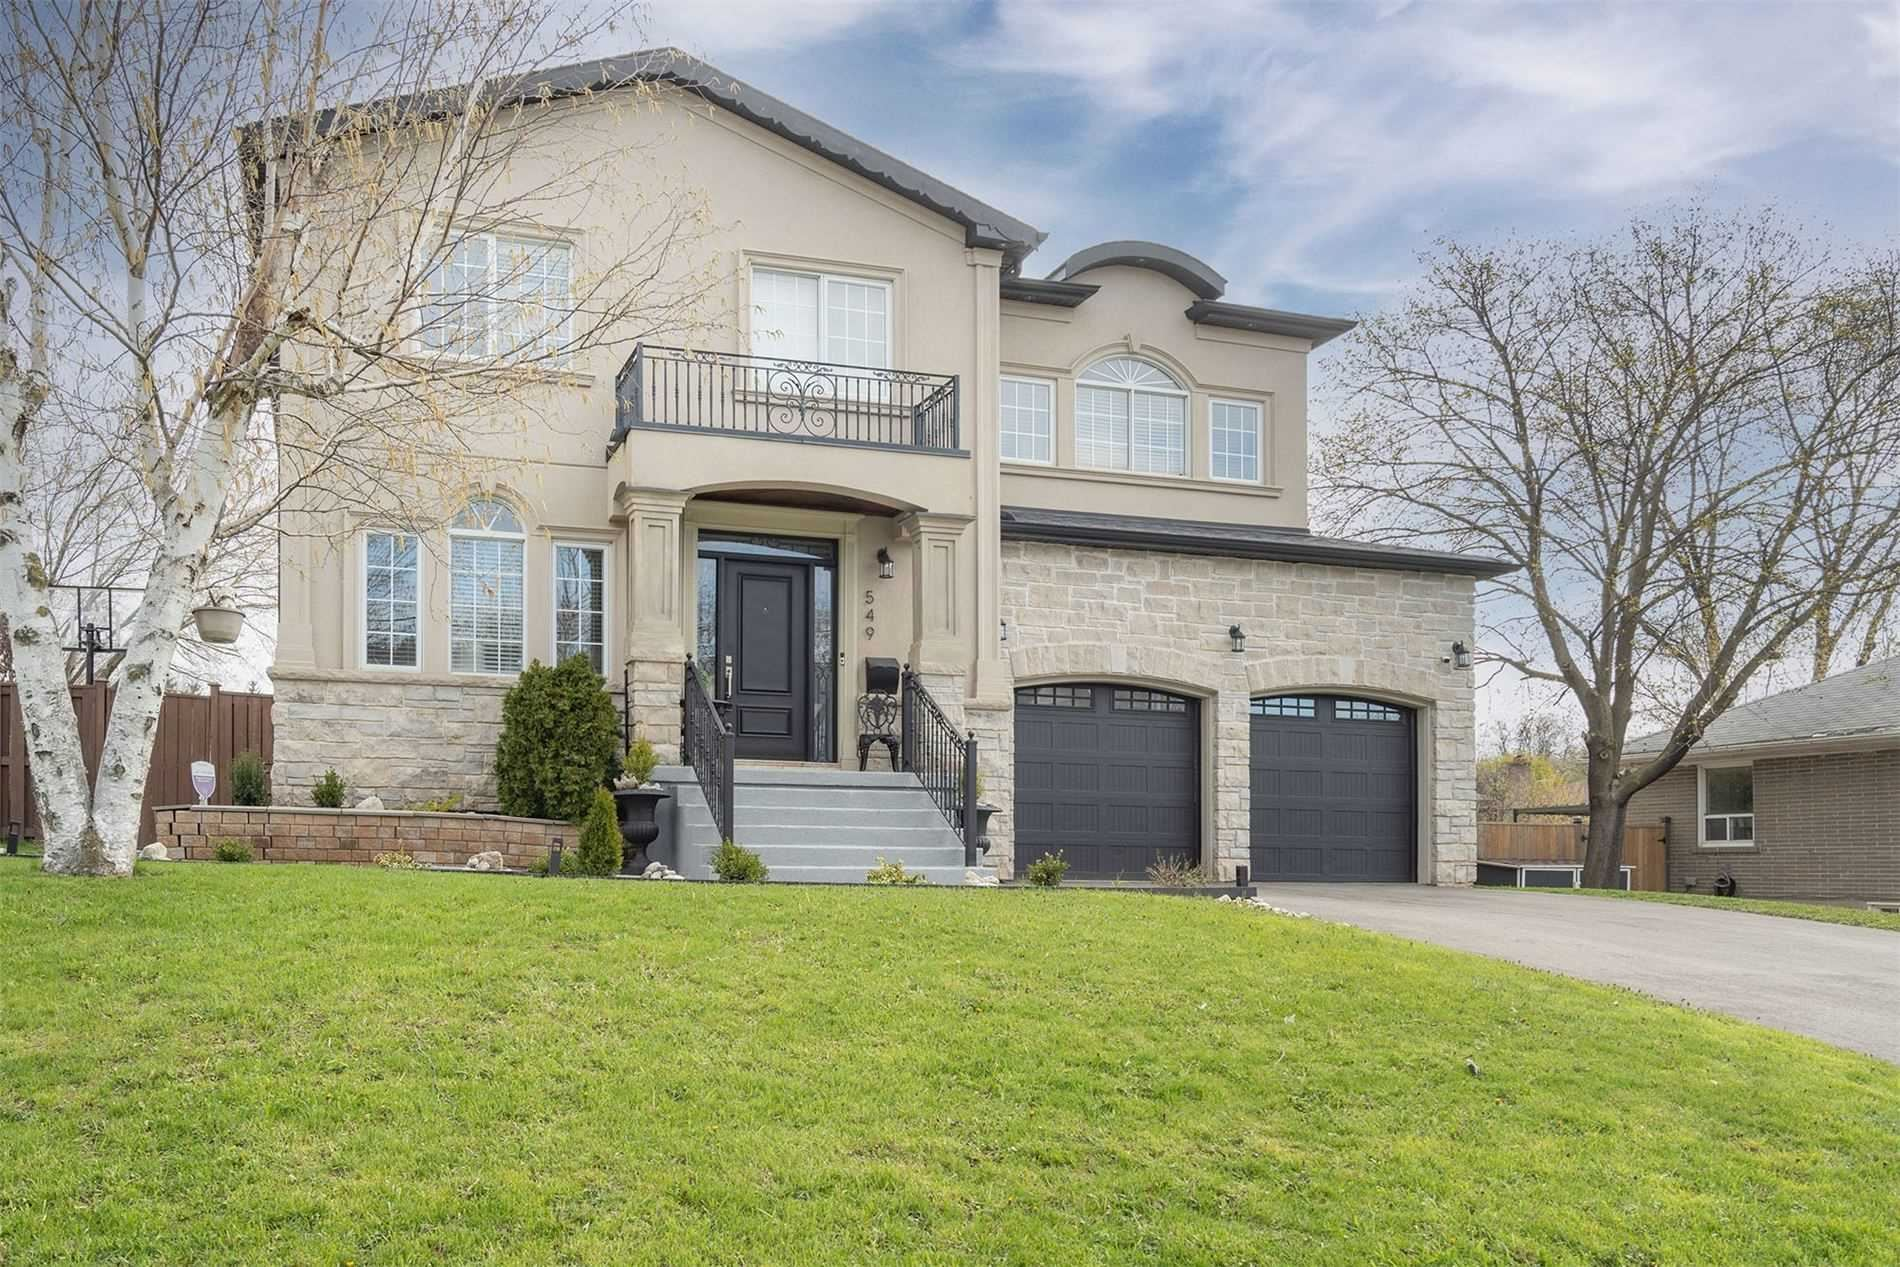 549 Weir Ave, Oakville, ON L6L 4X3 - MLS#: W5206080